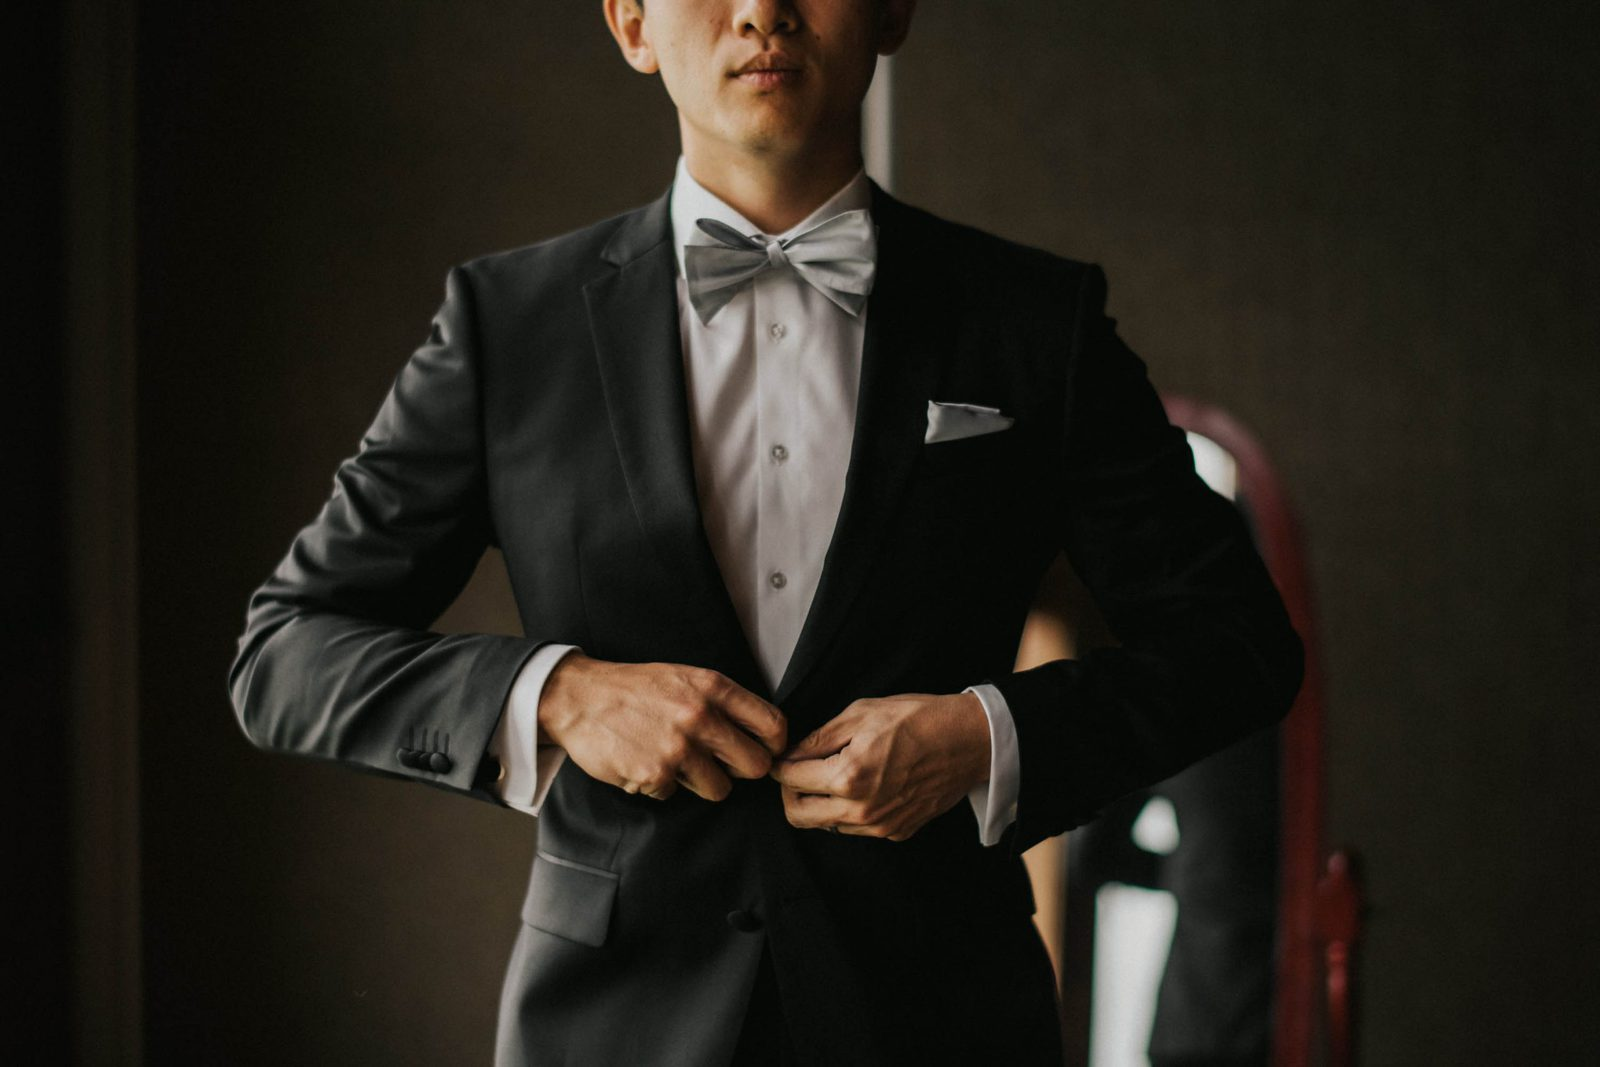 groom buttoning his tux